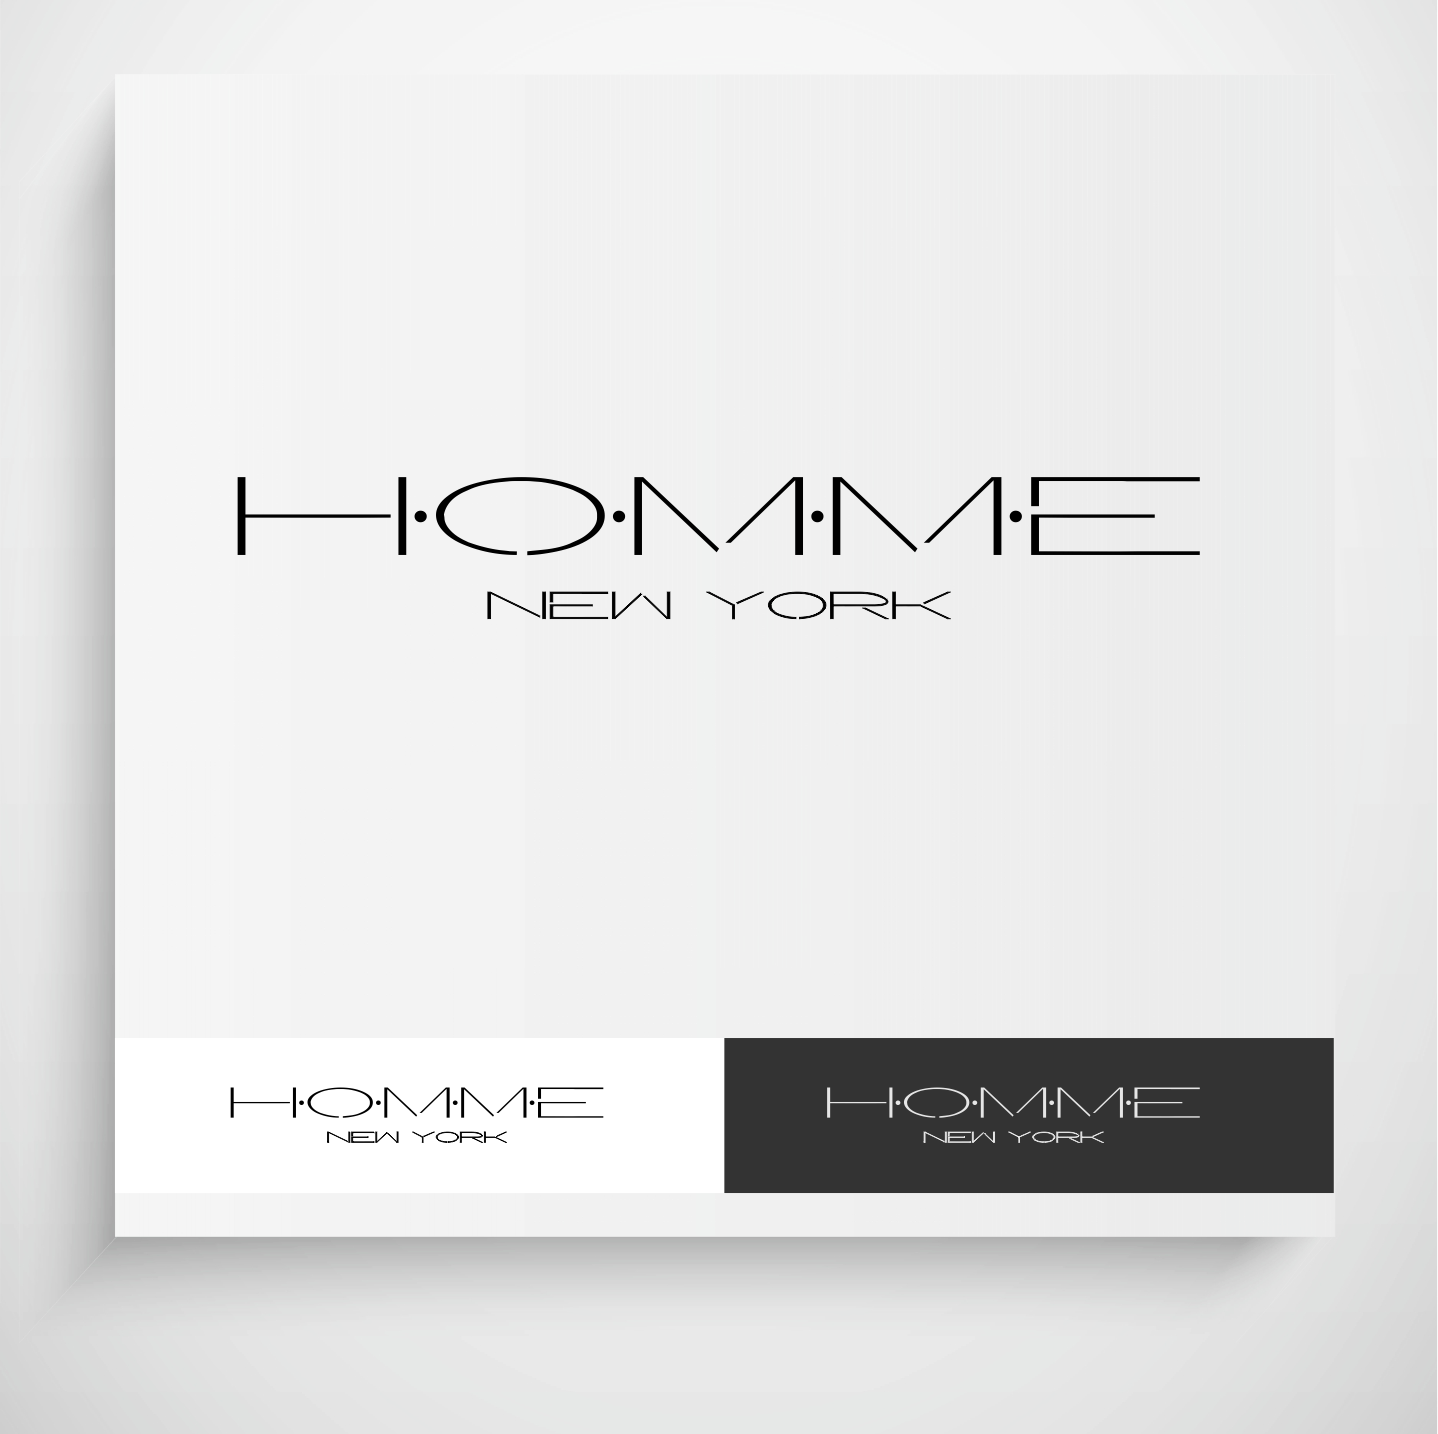 Logo Design by Krzysztof Mokanek - Entry No. 96 in the Logo Design Contest Artistic Logo Design for HOMME | NEW YORK.